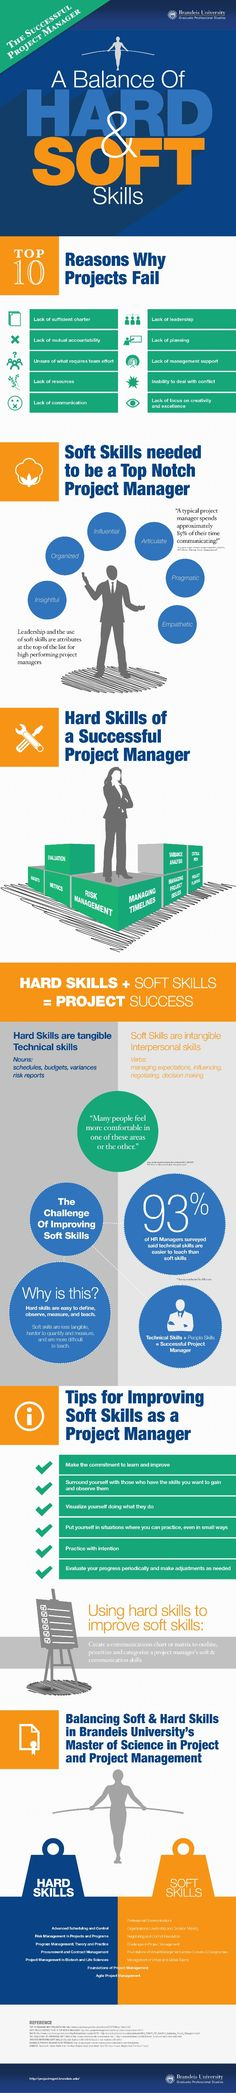 The Hard & Soft Skills Needed for Successful Project Management by andrewdeen14 via slideshare